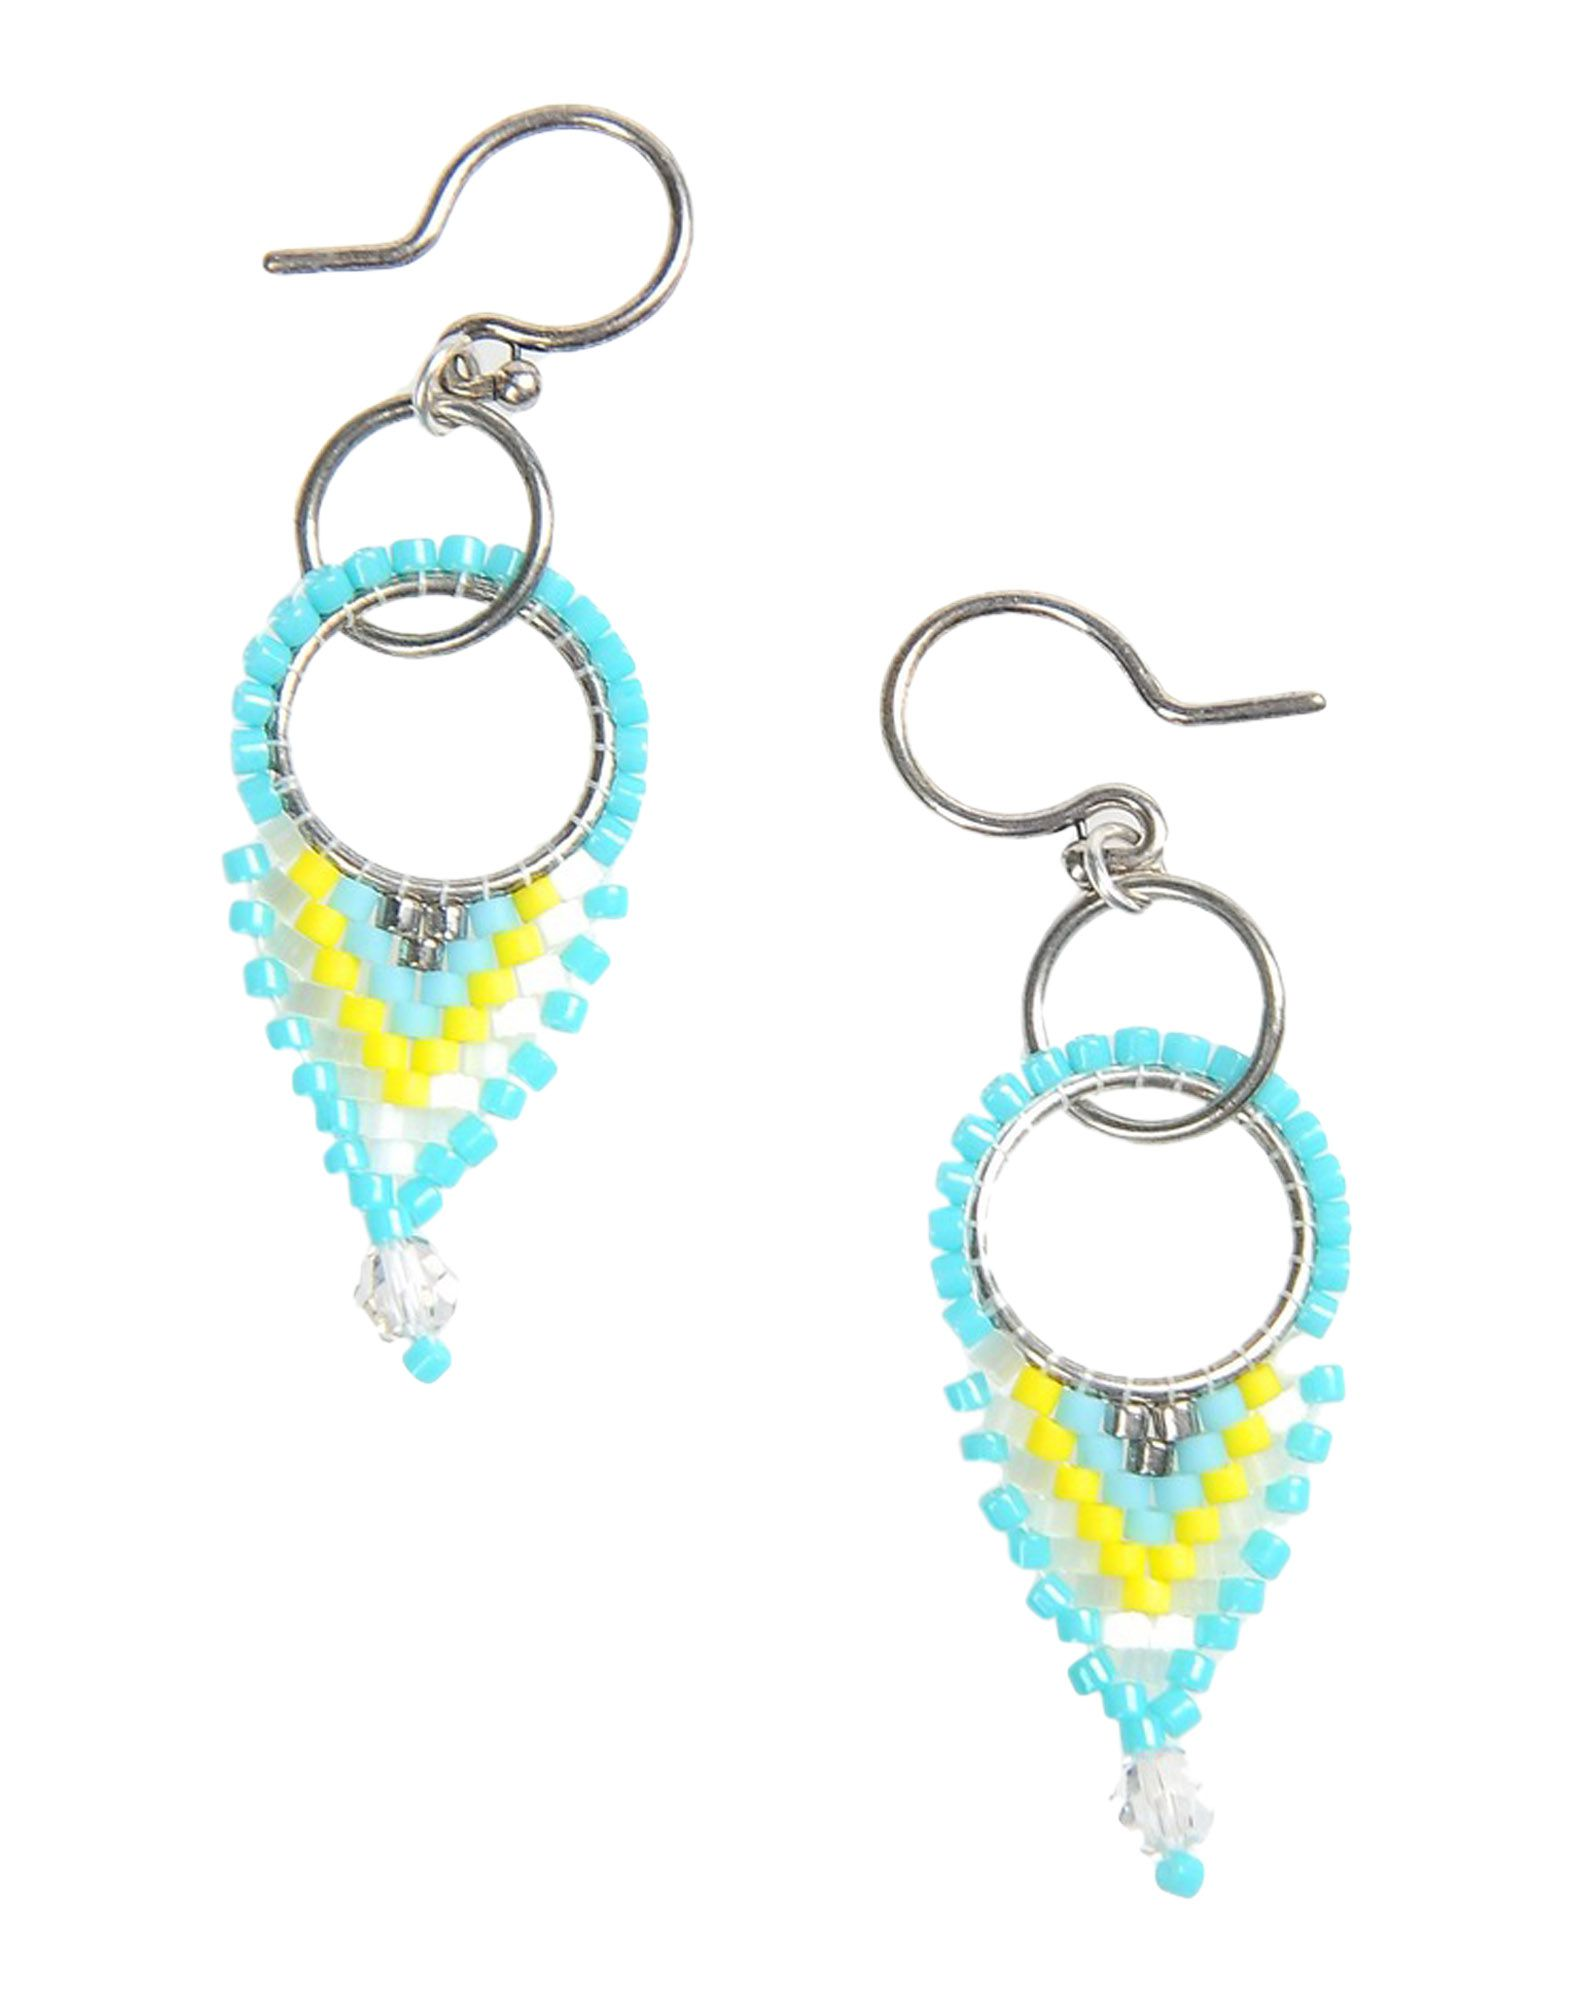 DETTAGLI JEWELRY - Earrings su YOOX.COM qbYQqTi